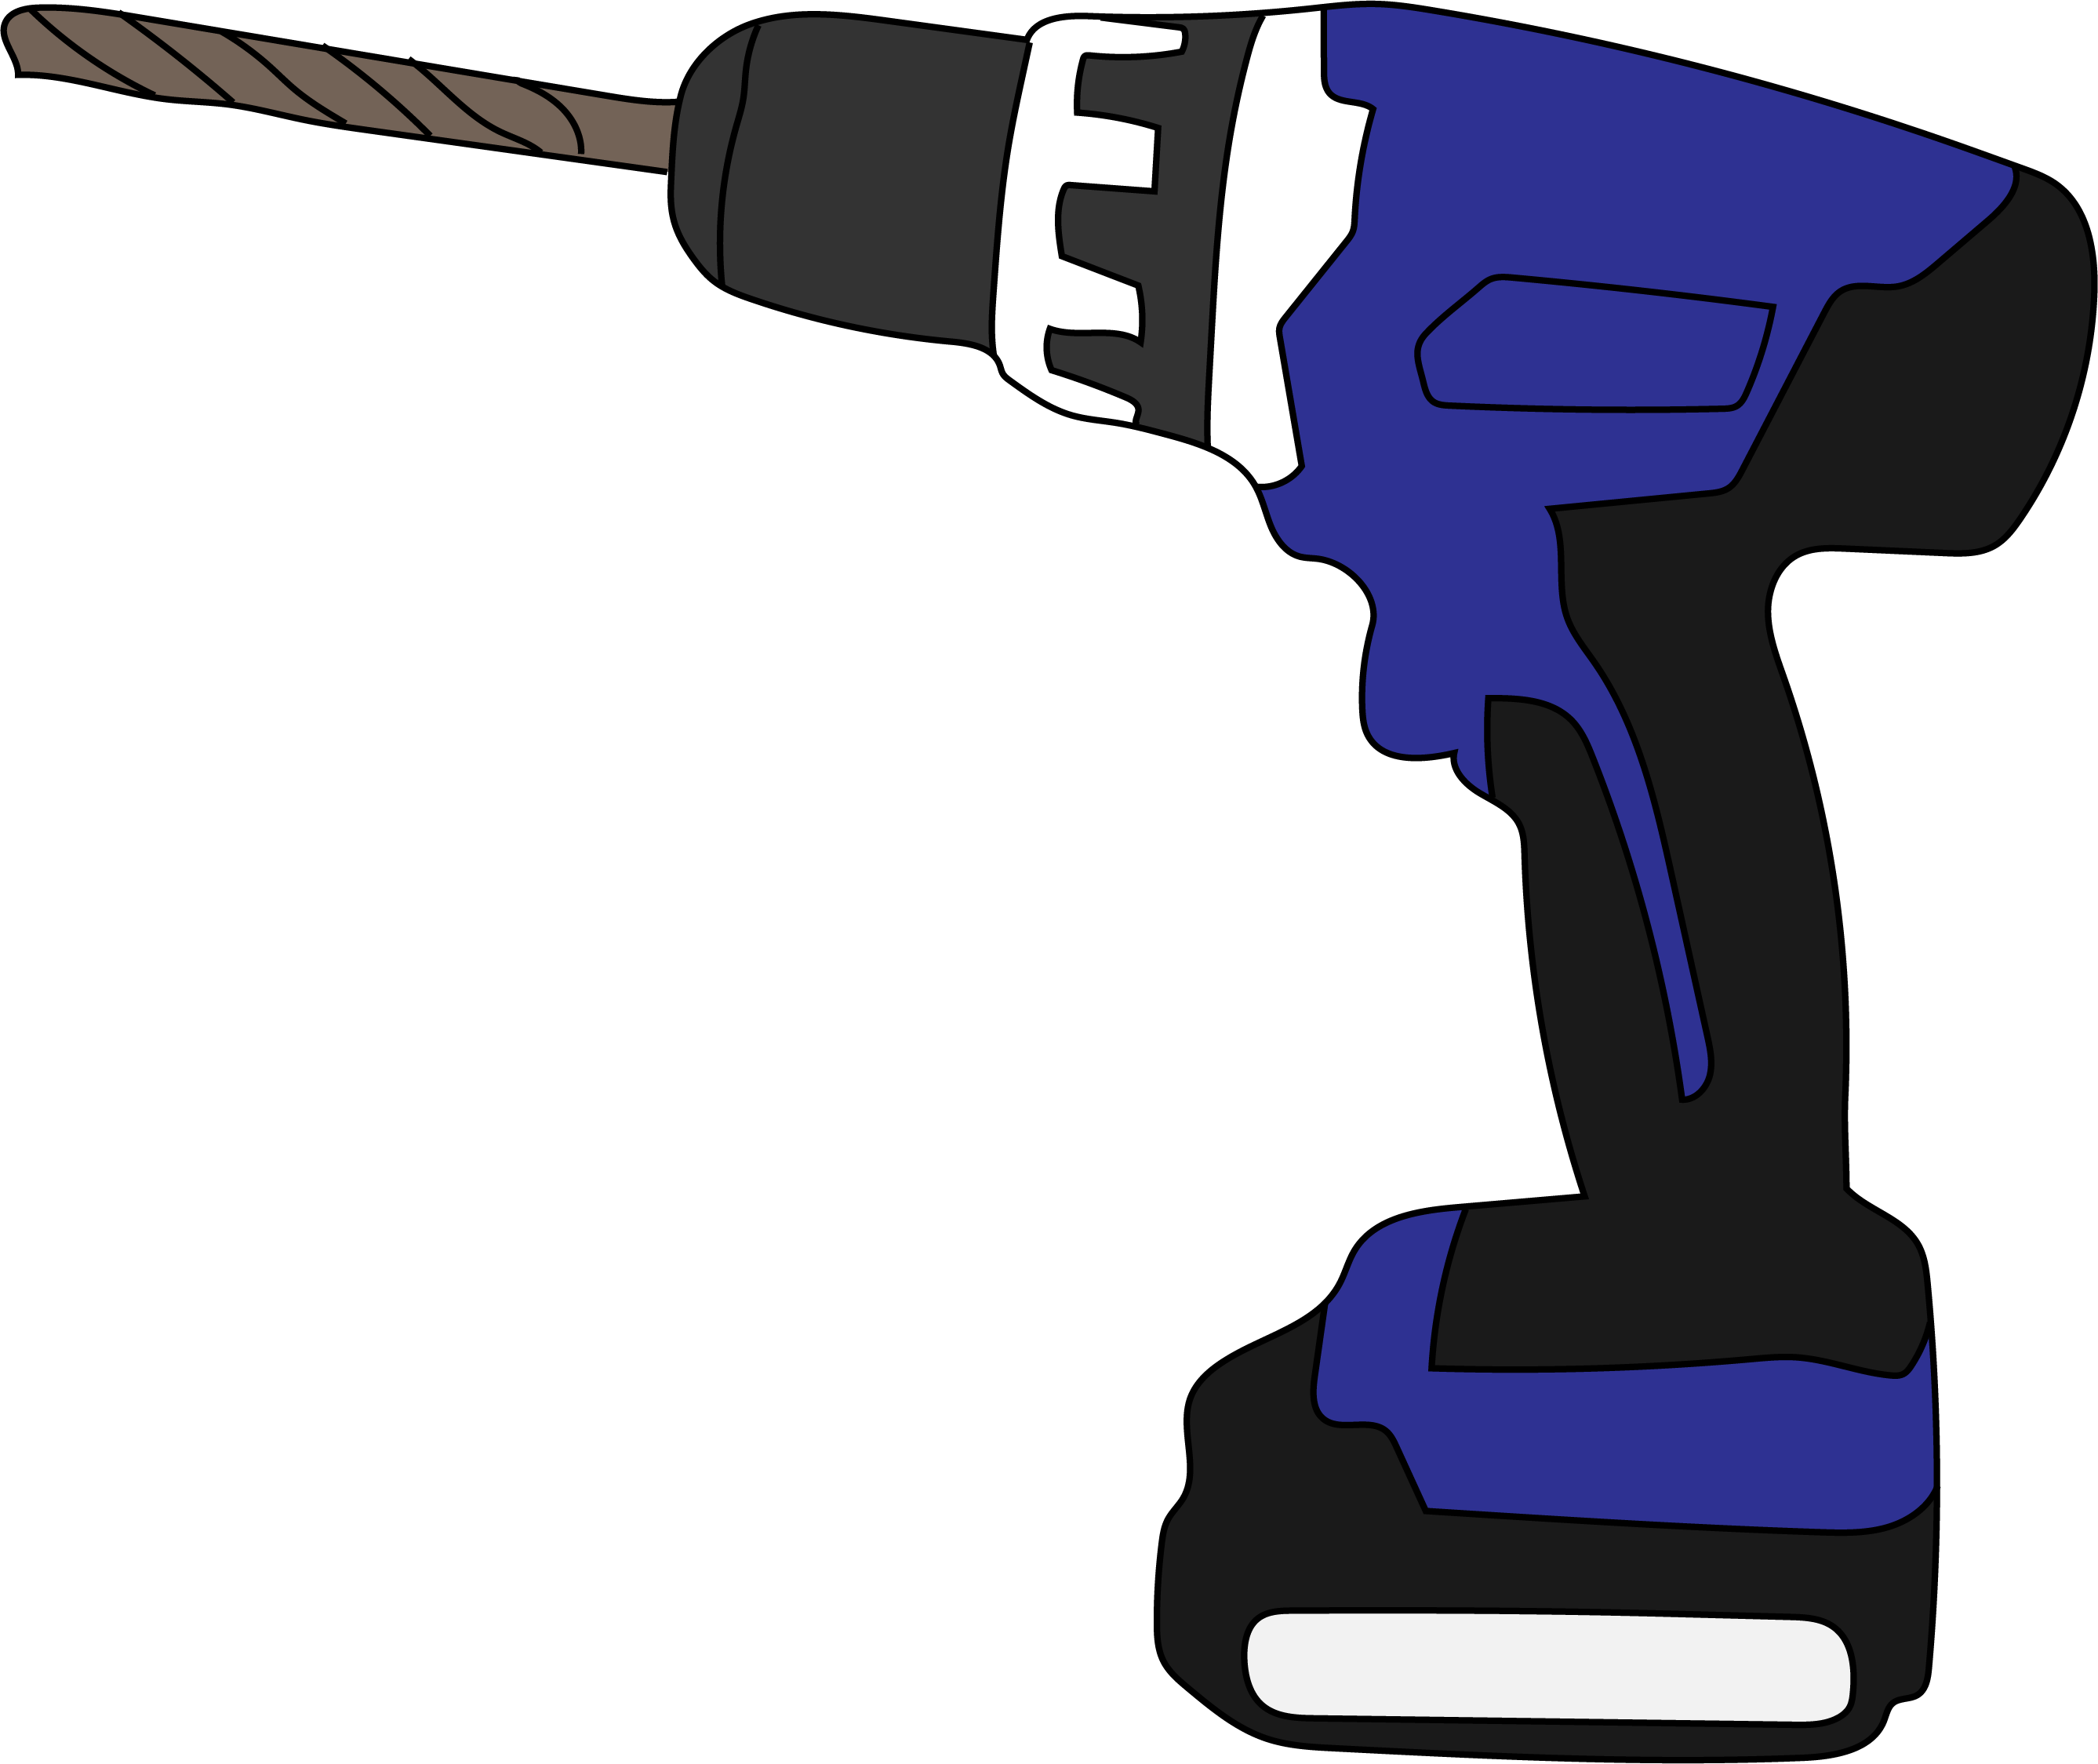 11 Drill png